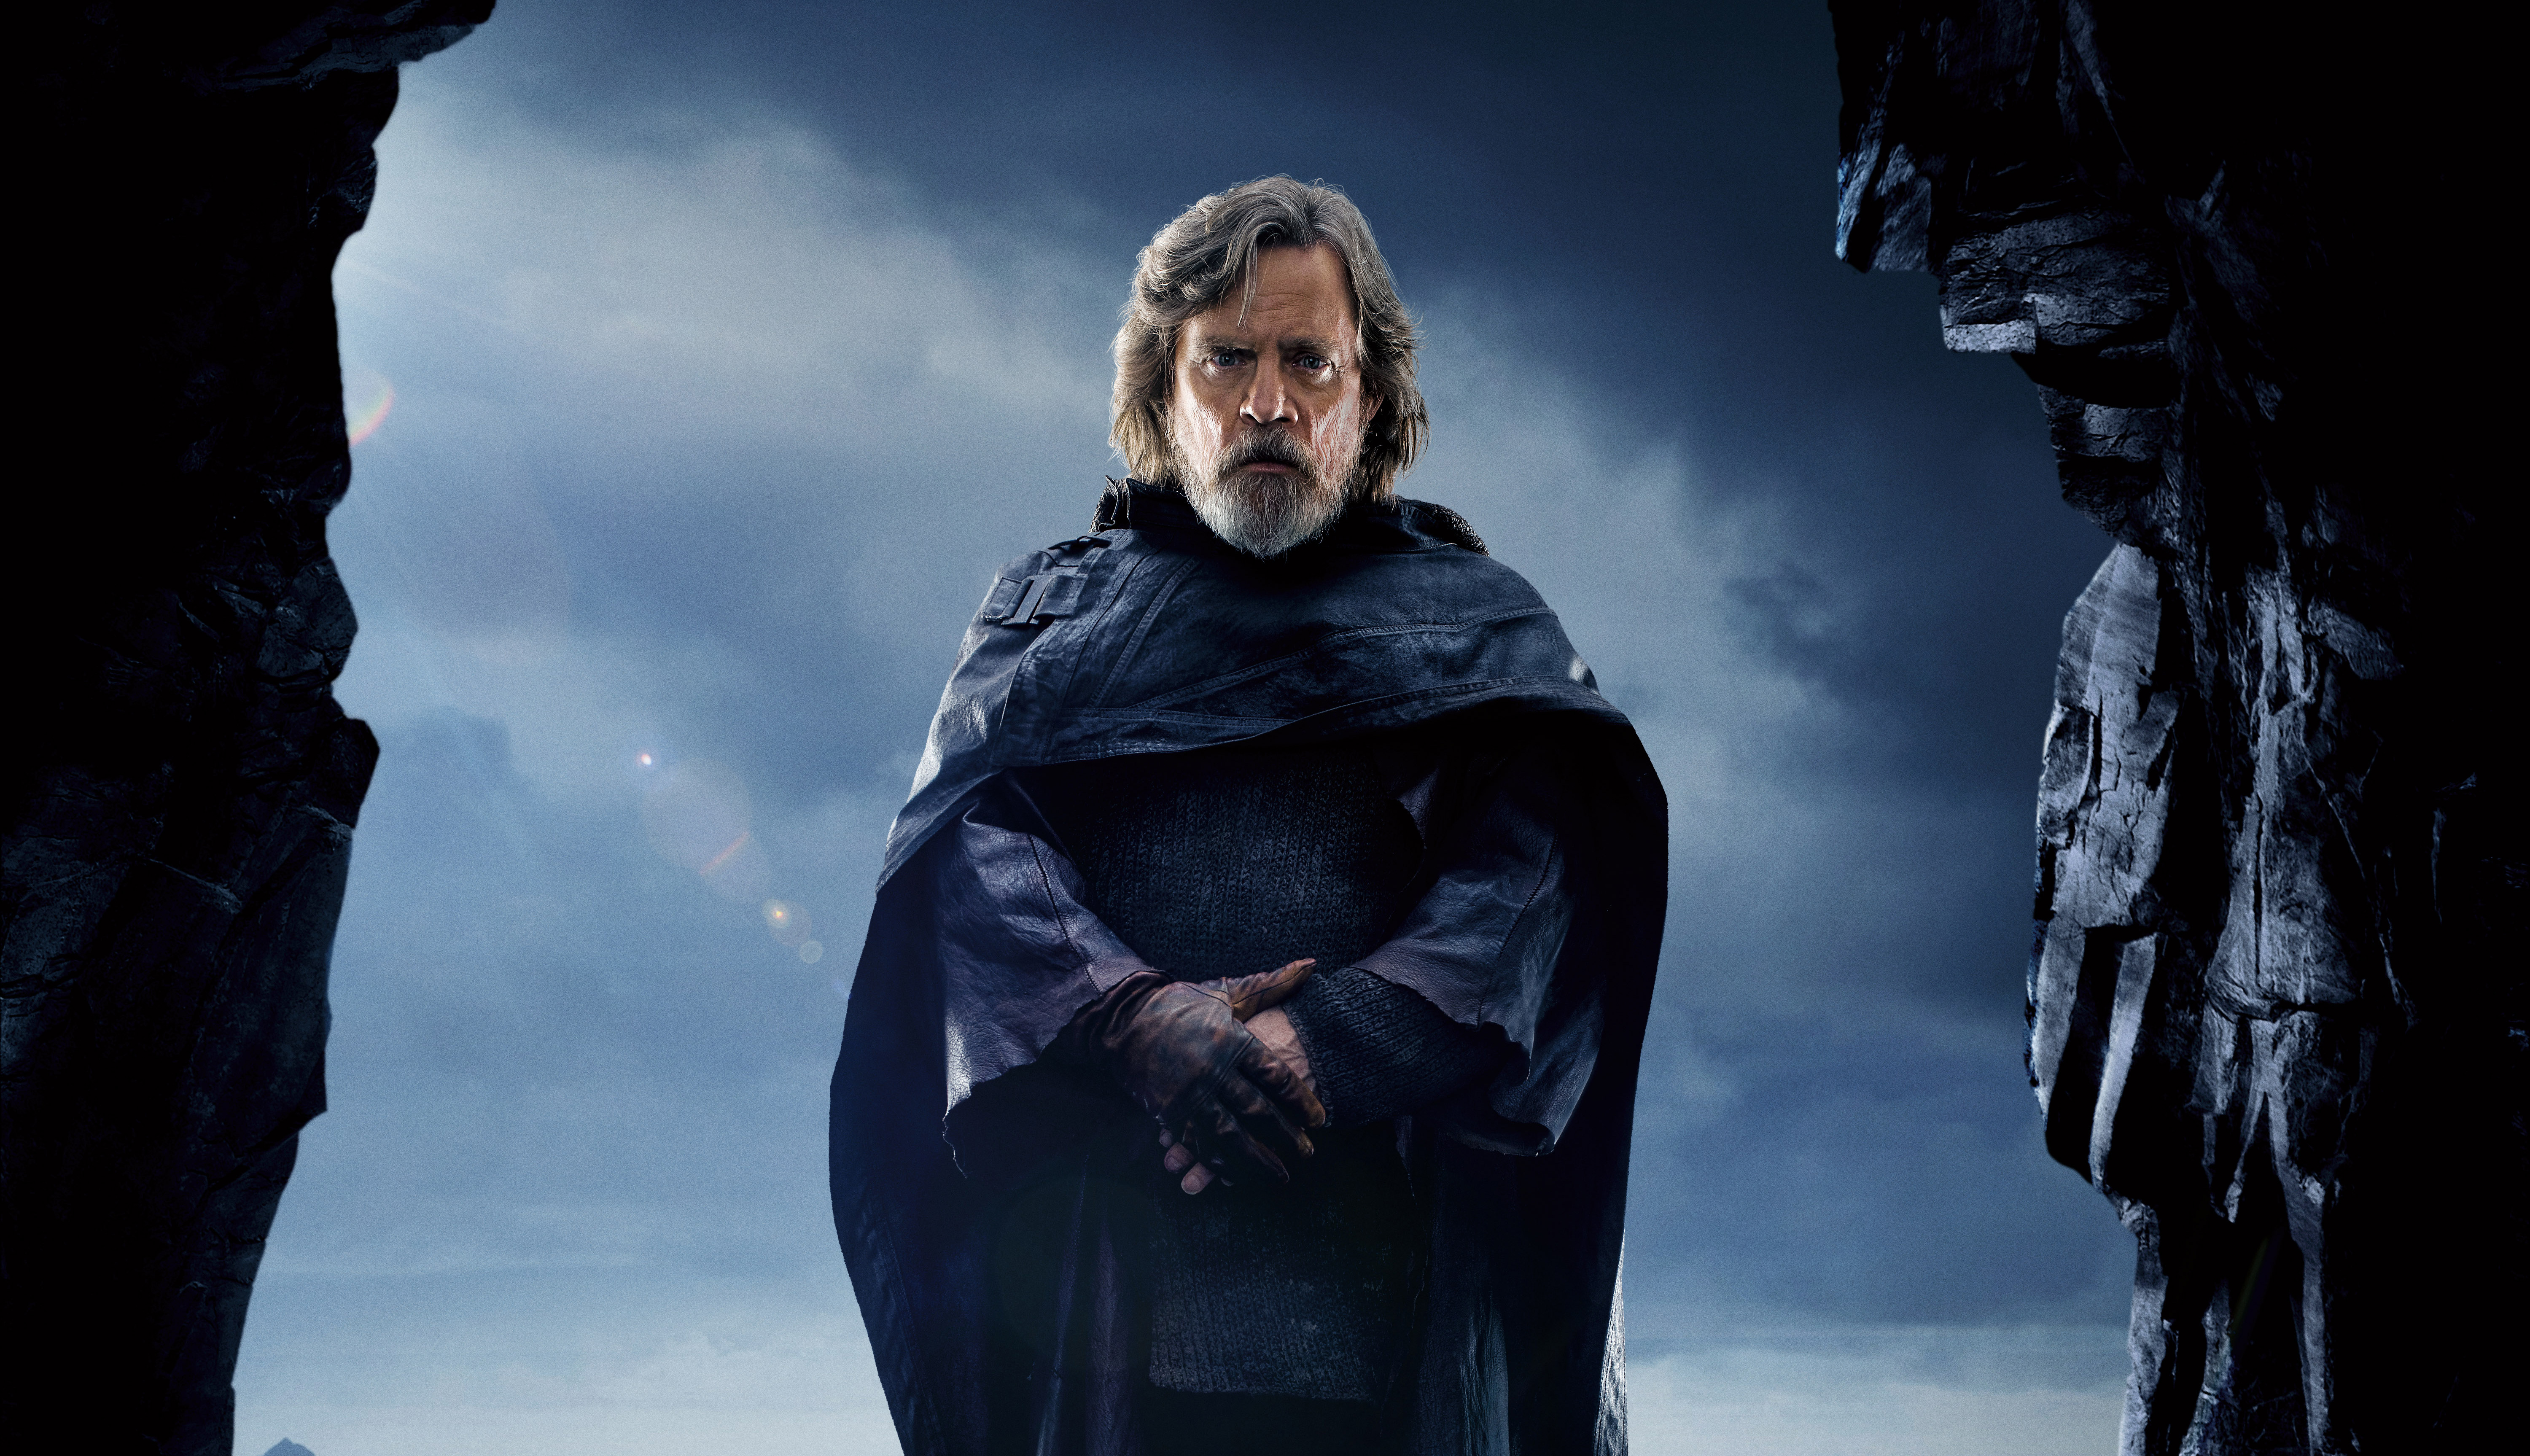 Download Wallpaper From Movie Star Wars The Last Jedi With Tags Cool Hot Free Windows 7 Download Luke Skywalker Mark Hamill 2017